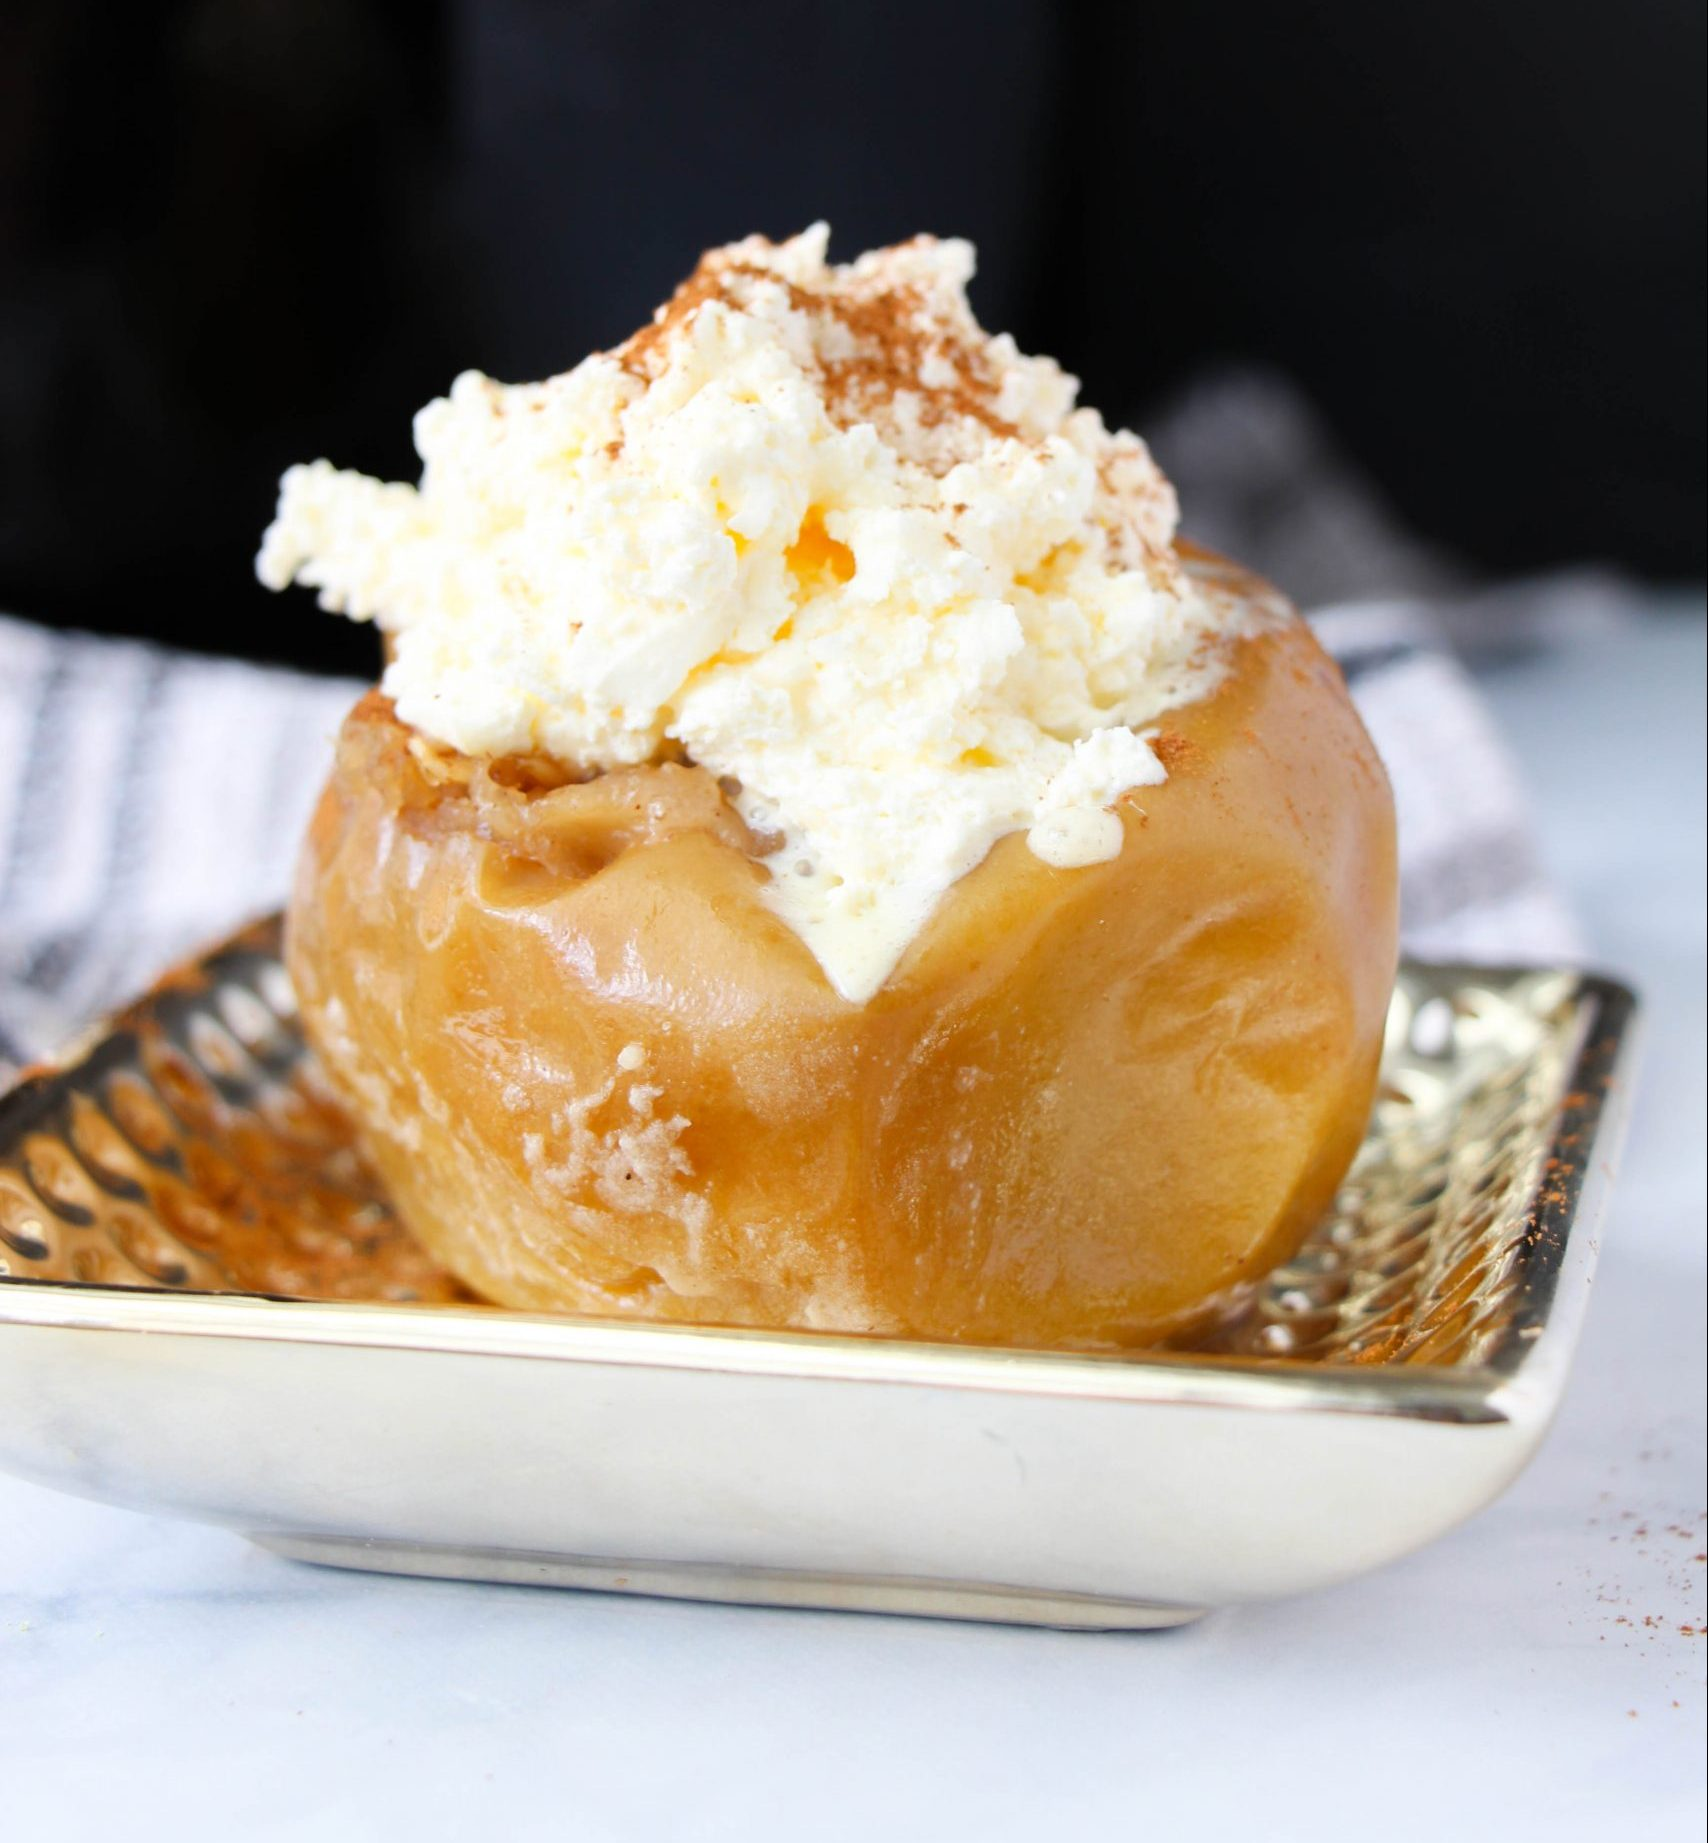 featured image showing the finished Baked Apples Recipe